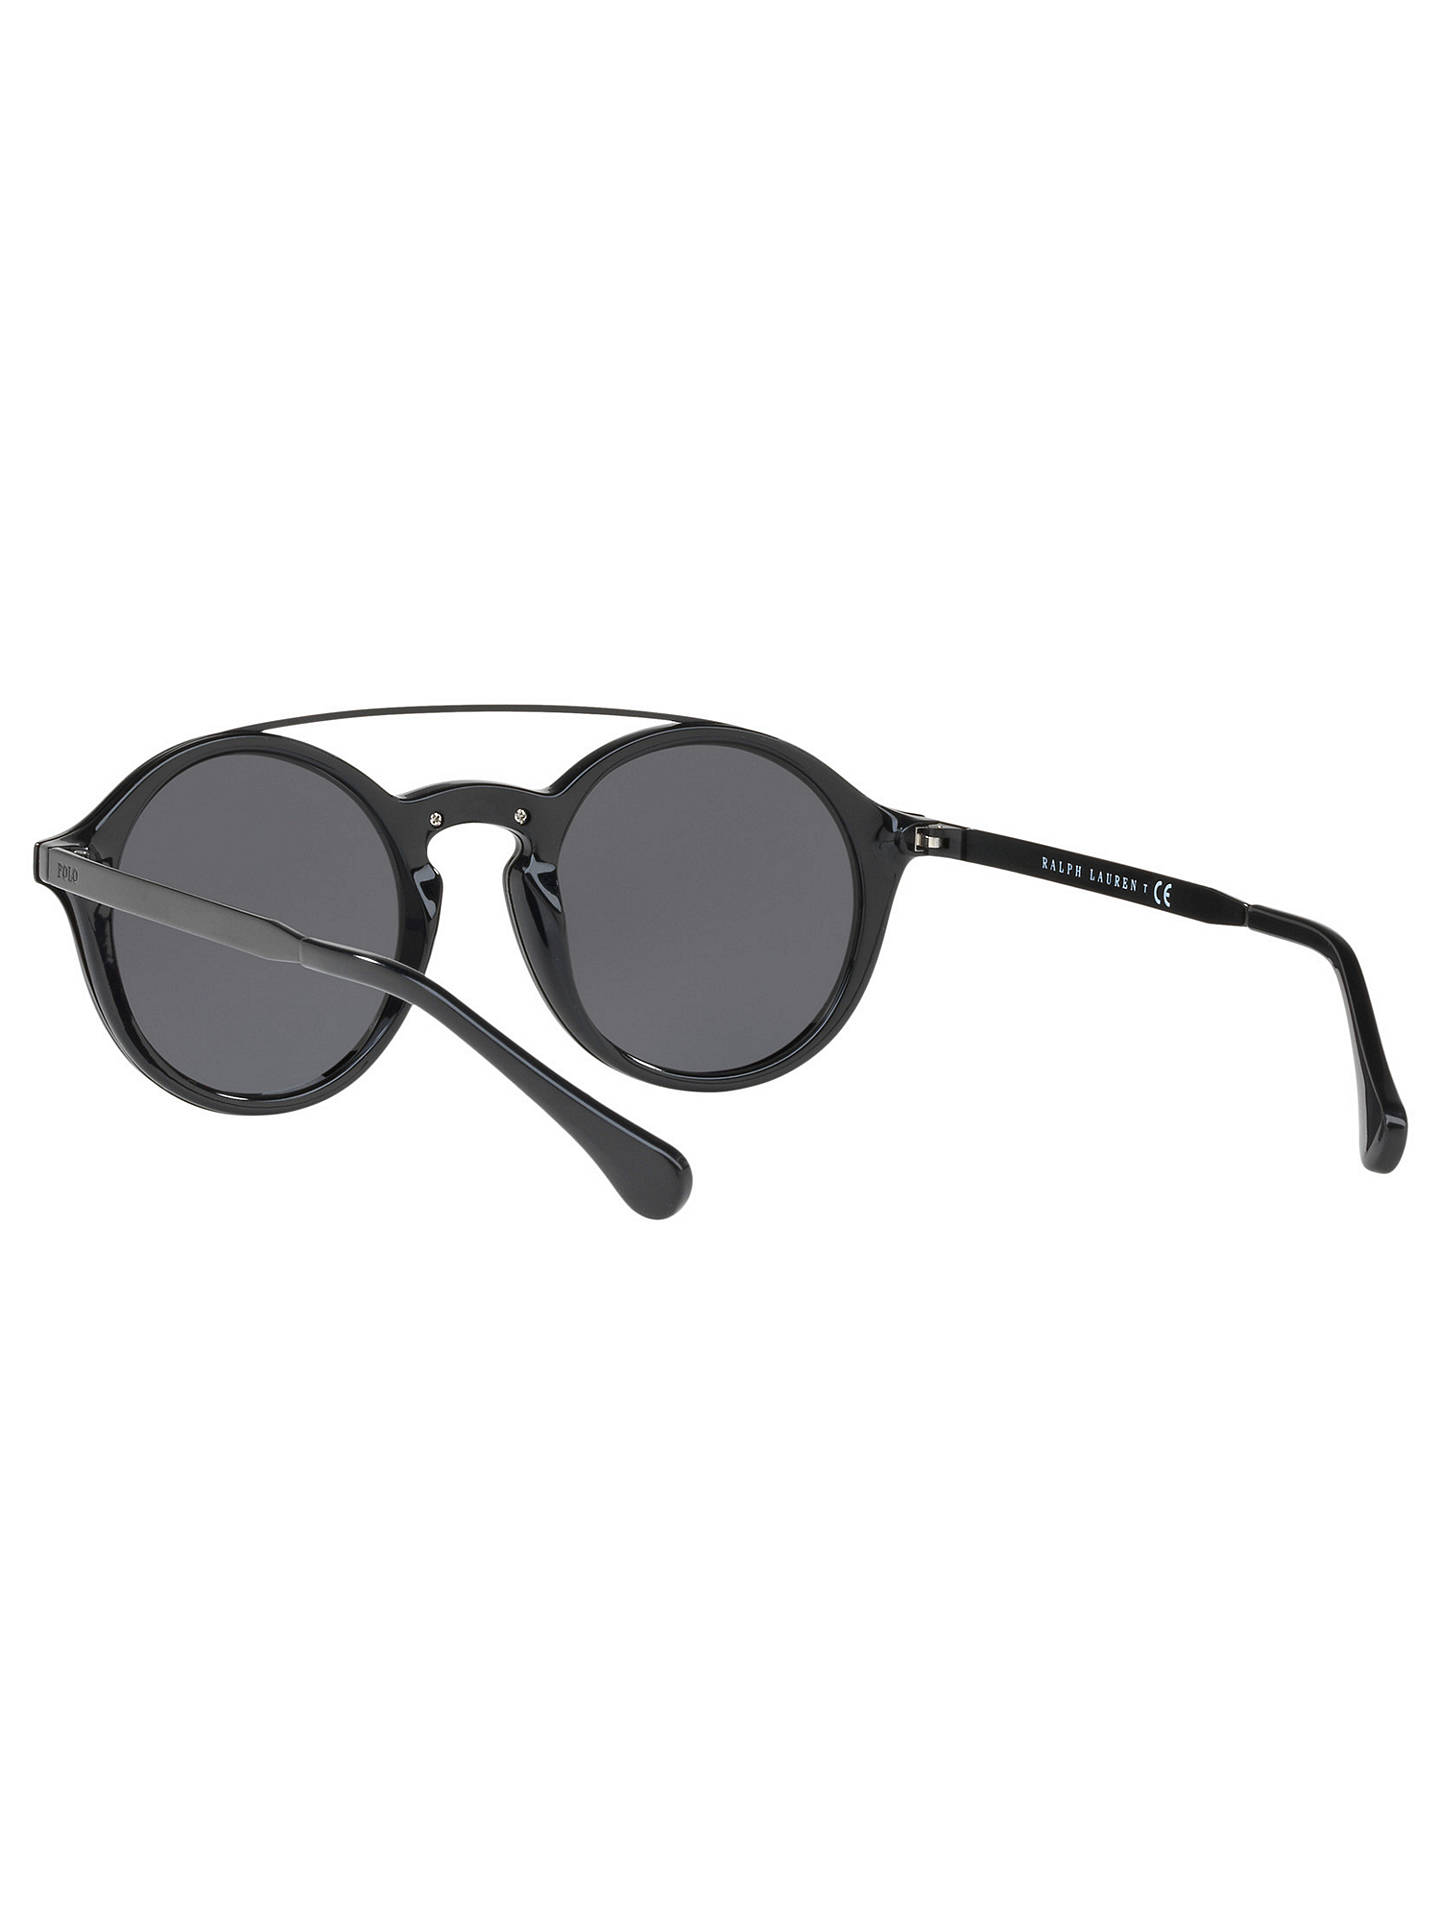 Buy Polo Ralph Lauren PH4122 Round Sunglasses, Black/Grey Online at johnlewis.com